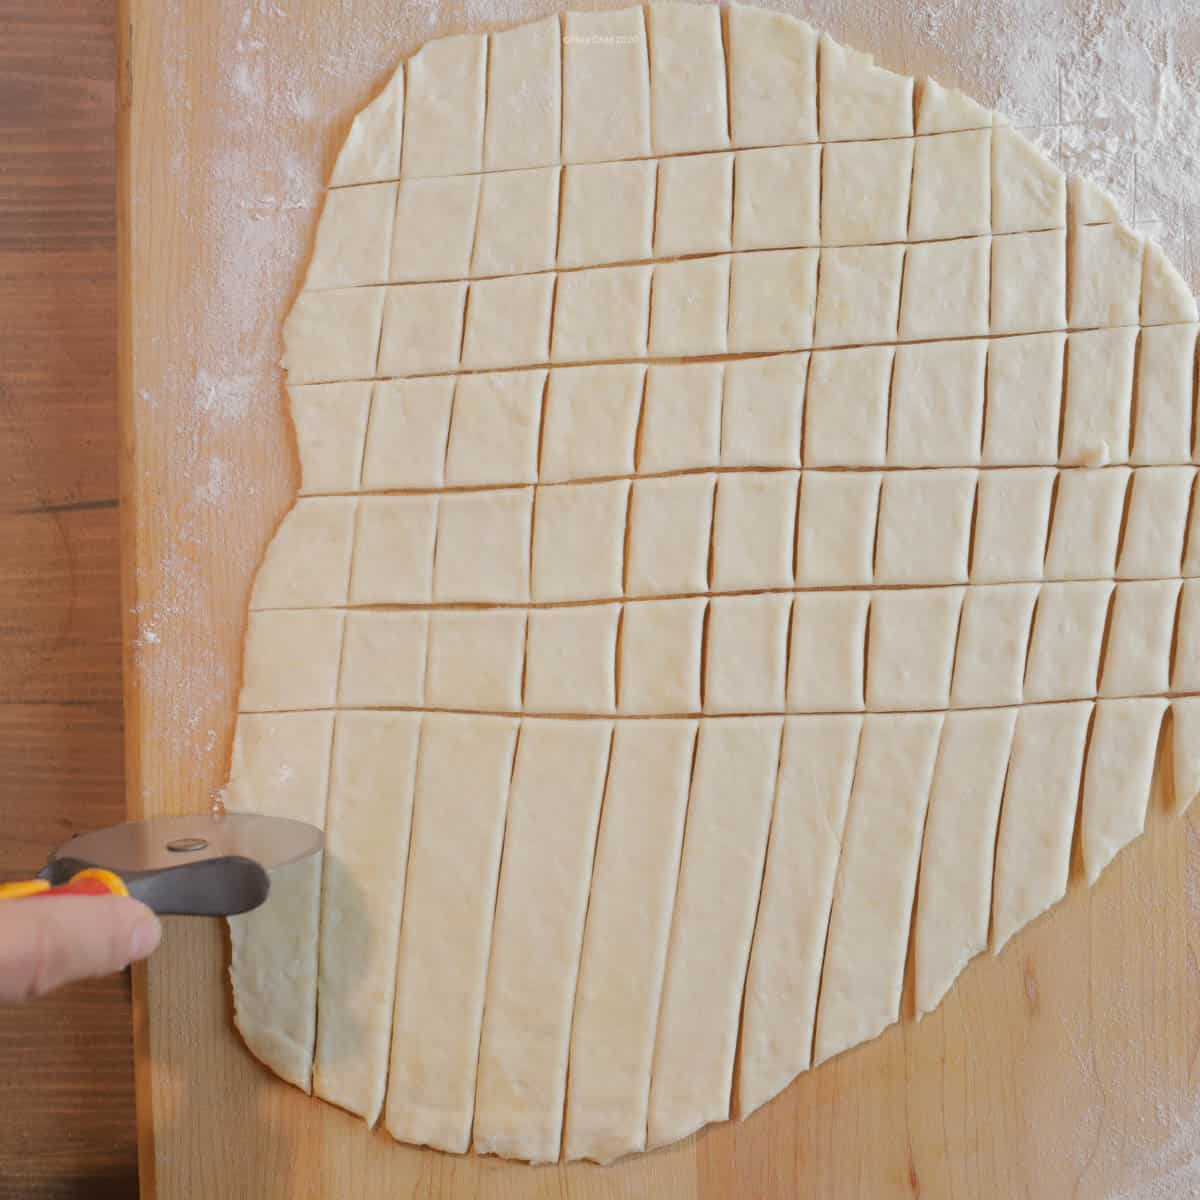 Dumplings being sliced with a pizza wheel